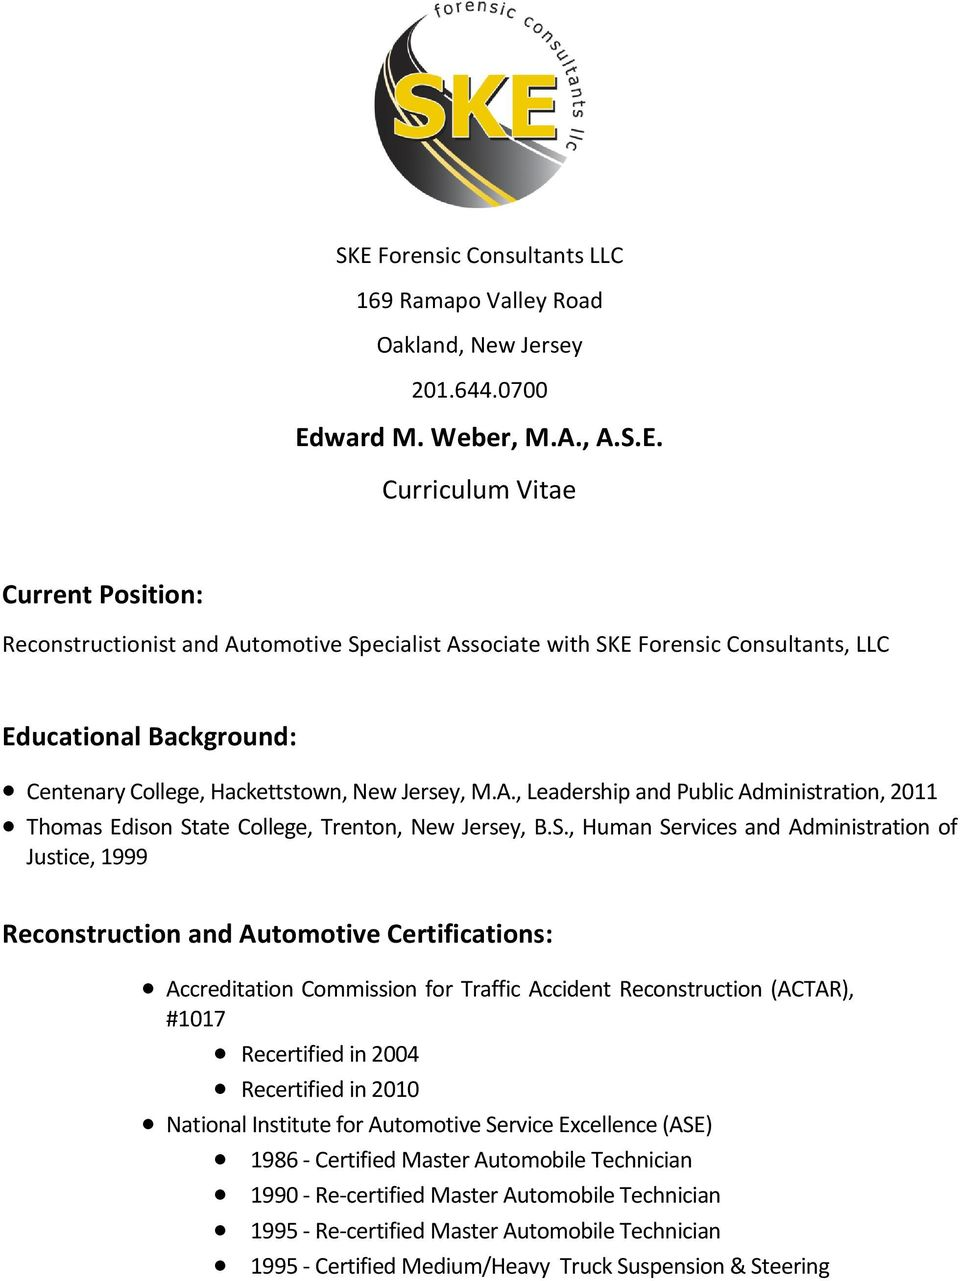 Edward m weber m a a s e curriculum vitae pdf for Motor vehicle inspection edison nj